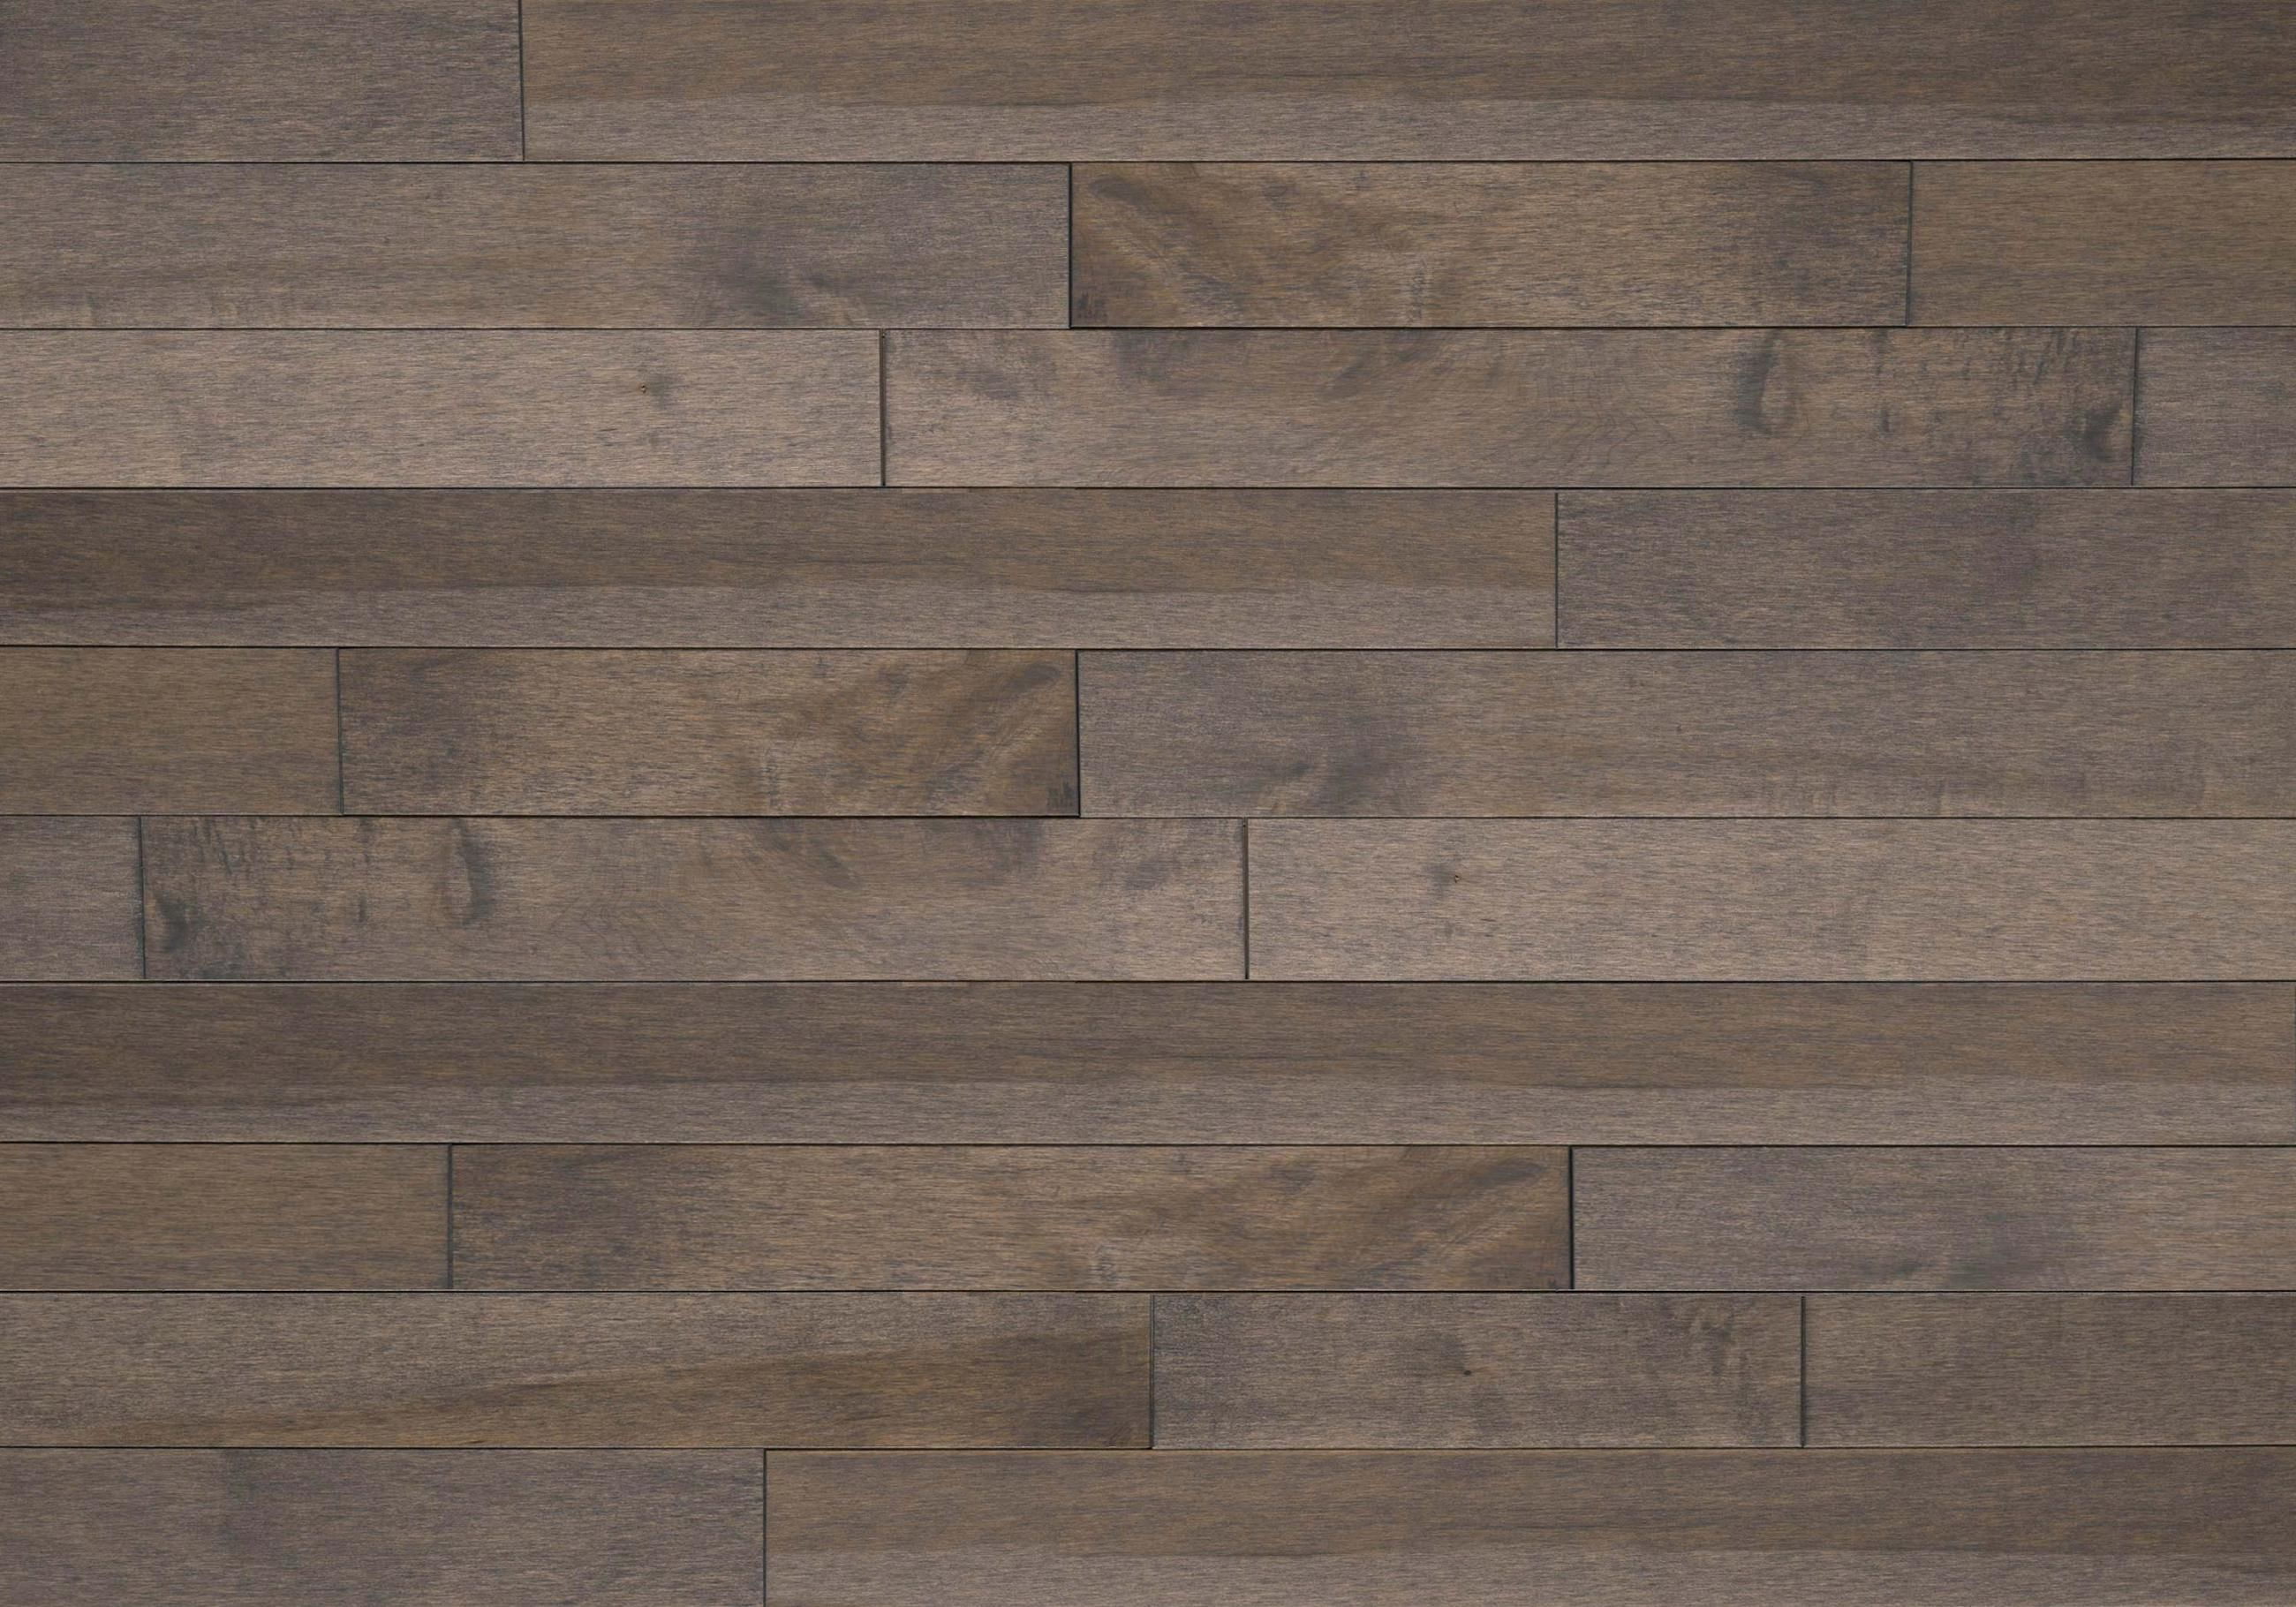 Discover Lauzons Hardwood Flooring With Our Smoky Grey This Magnific Hard Maple From Essential Collection Will Enhance Your Decor Its